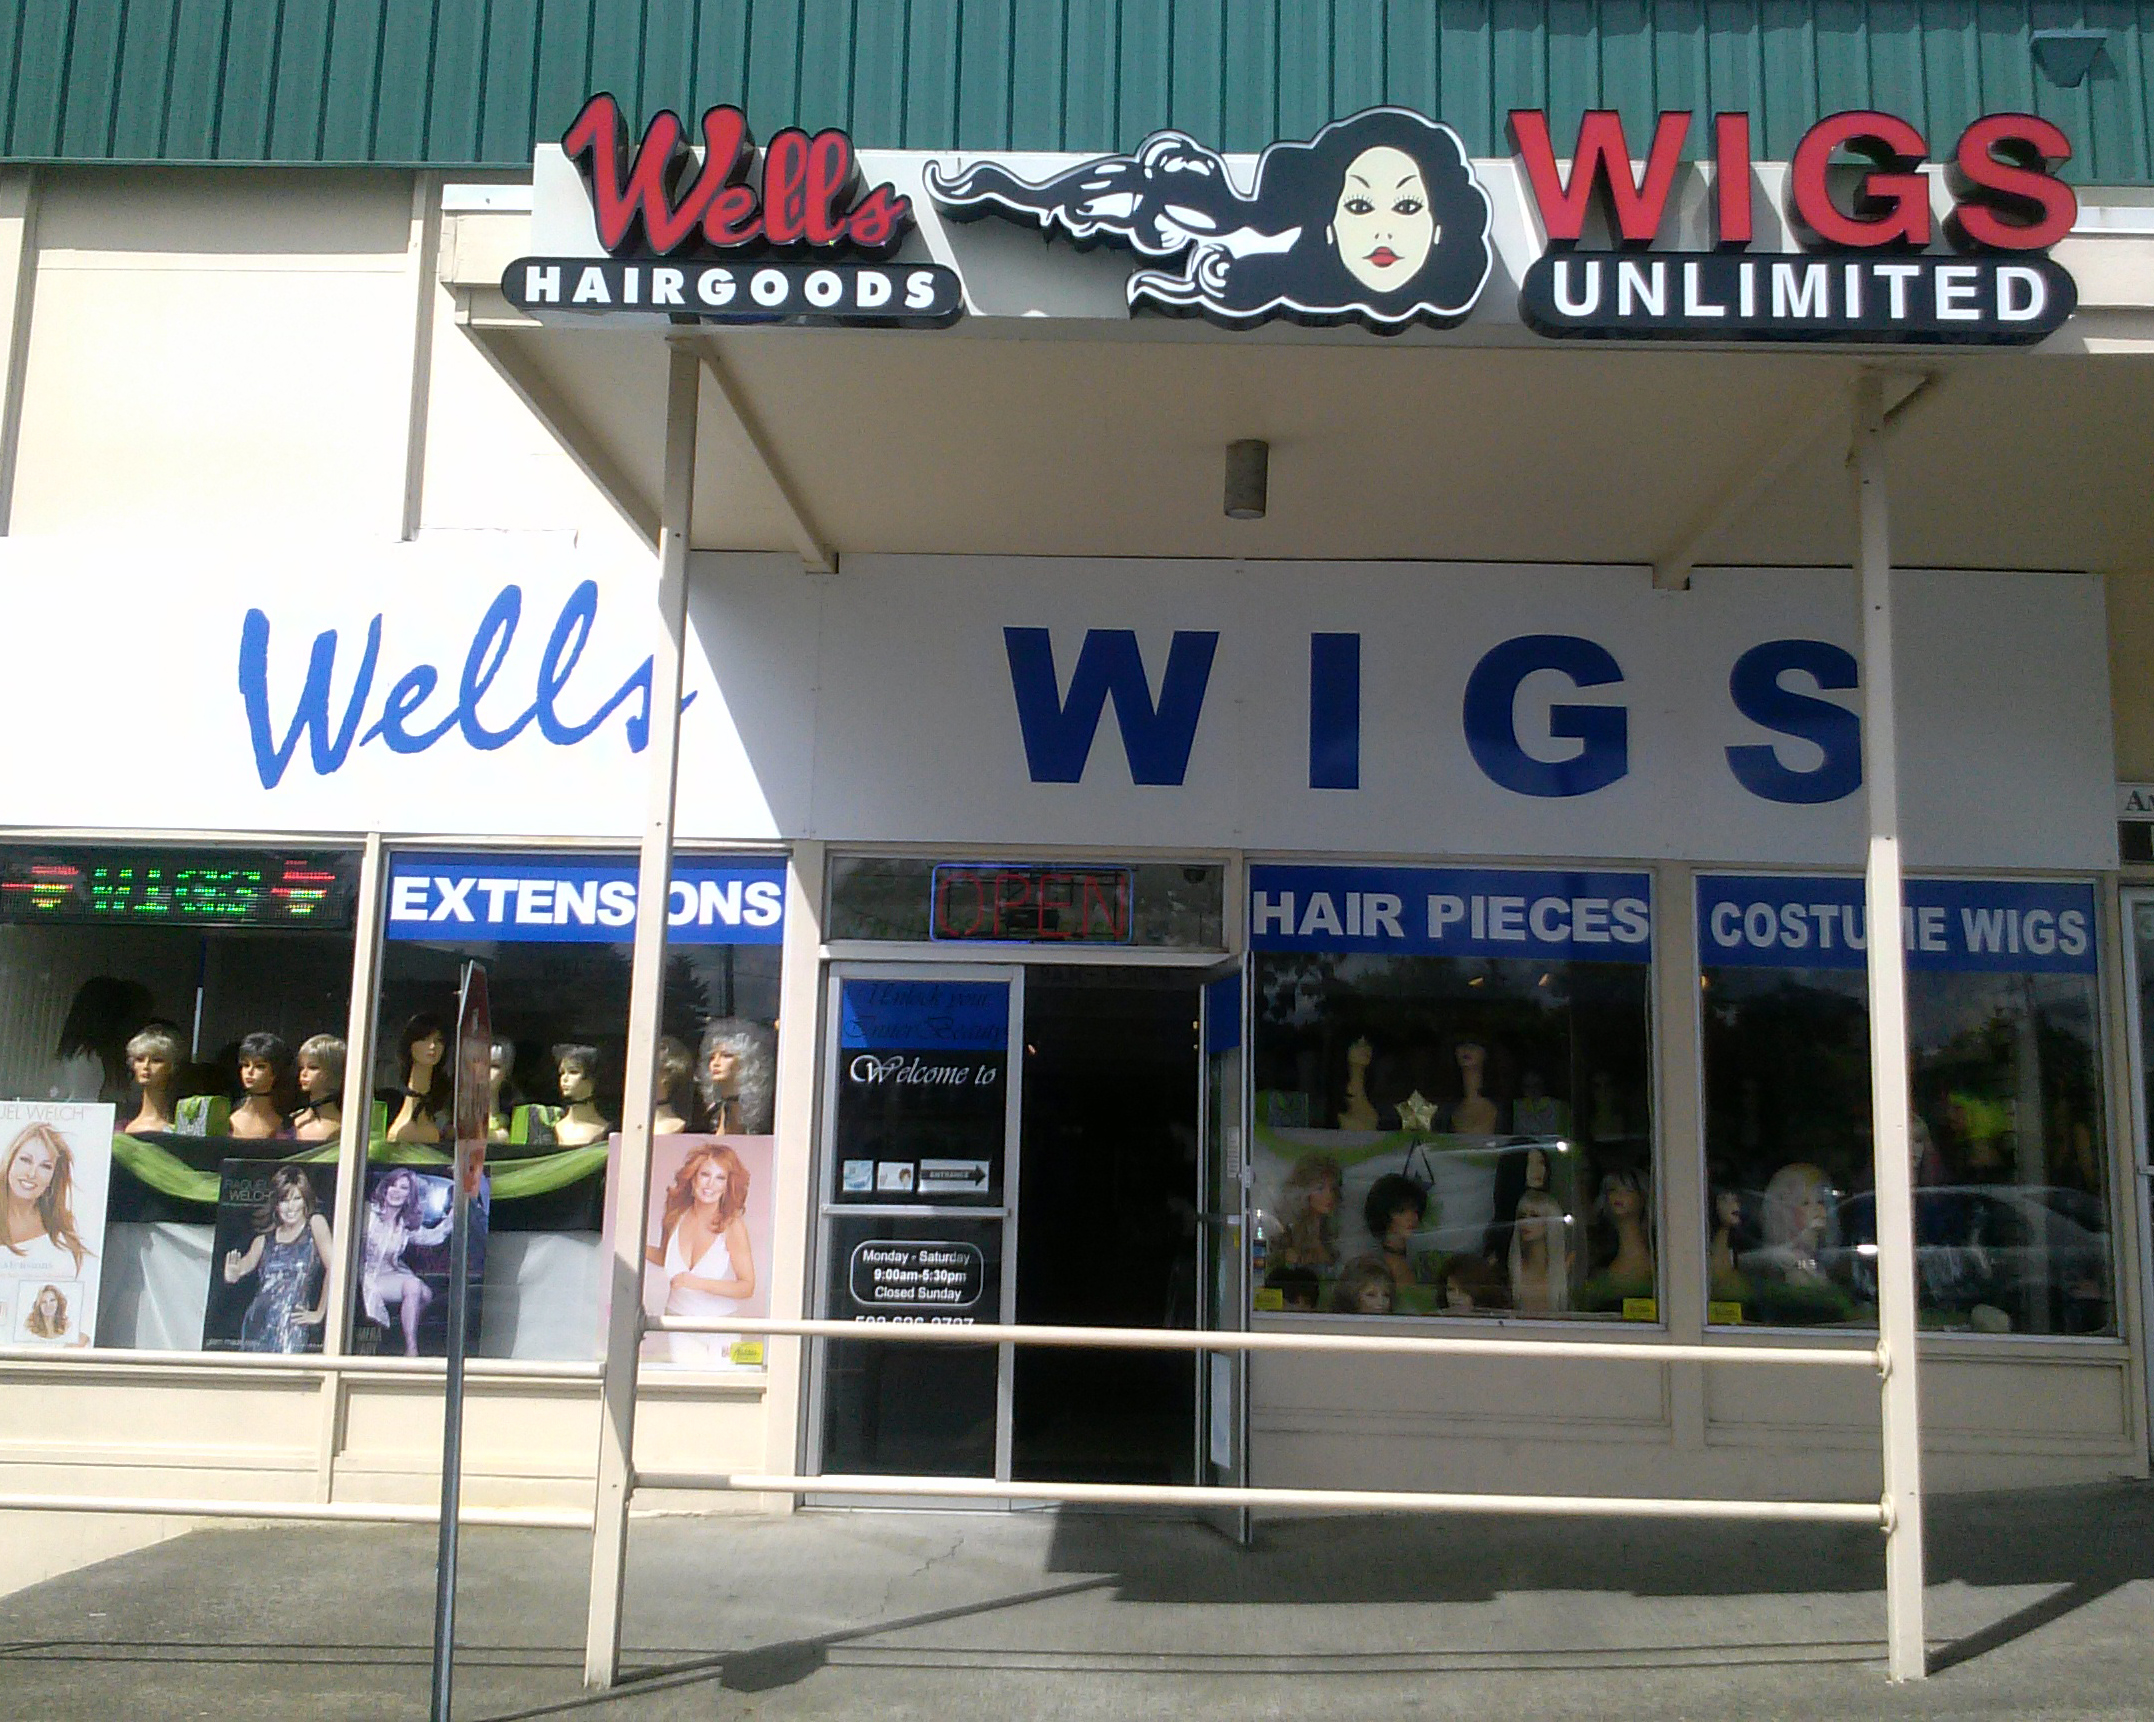 stoWigs Unlimited retail store providing wigs for the greaterSalem and McMinnville, Oregonareas.